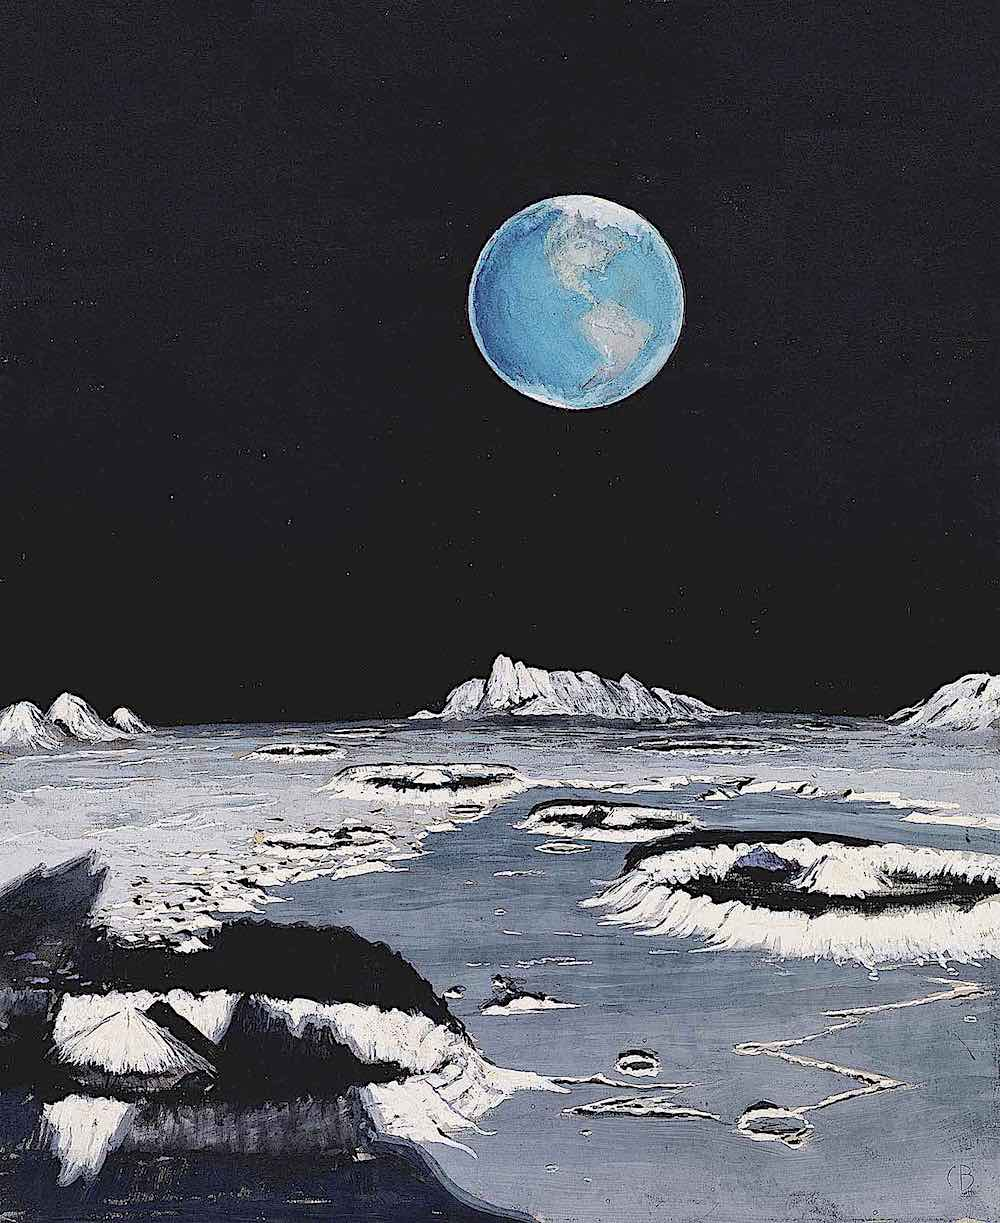 a Charles Bittinger illustration 1939, of the Earth as seen from the moon